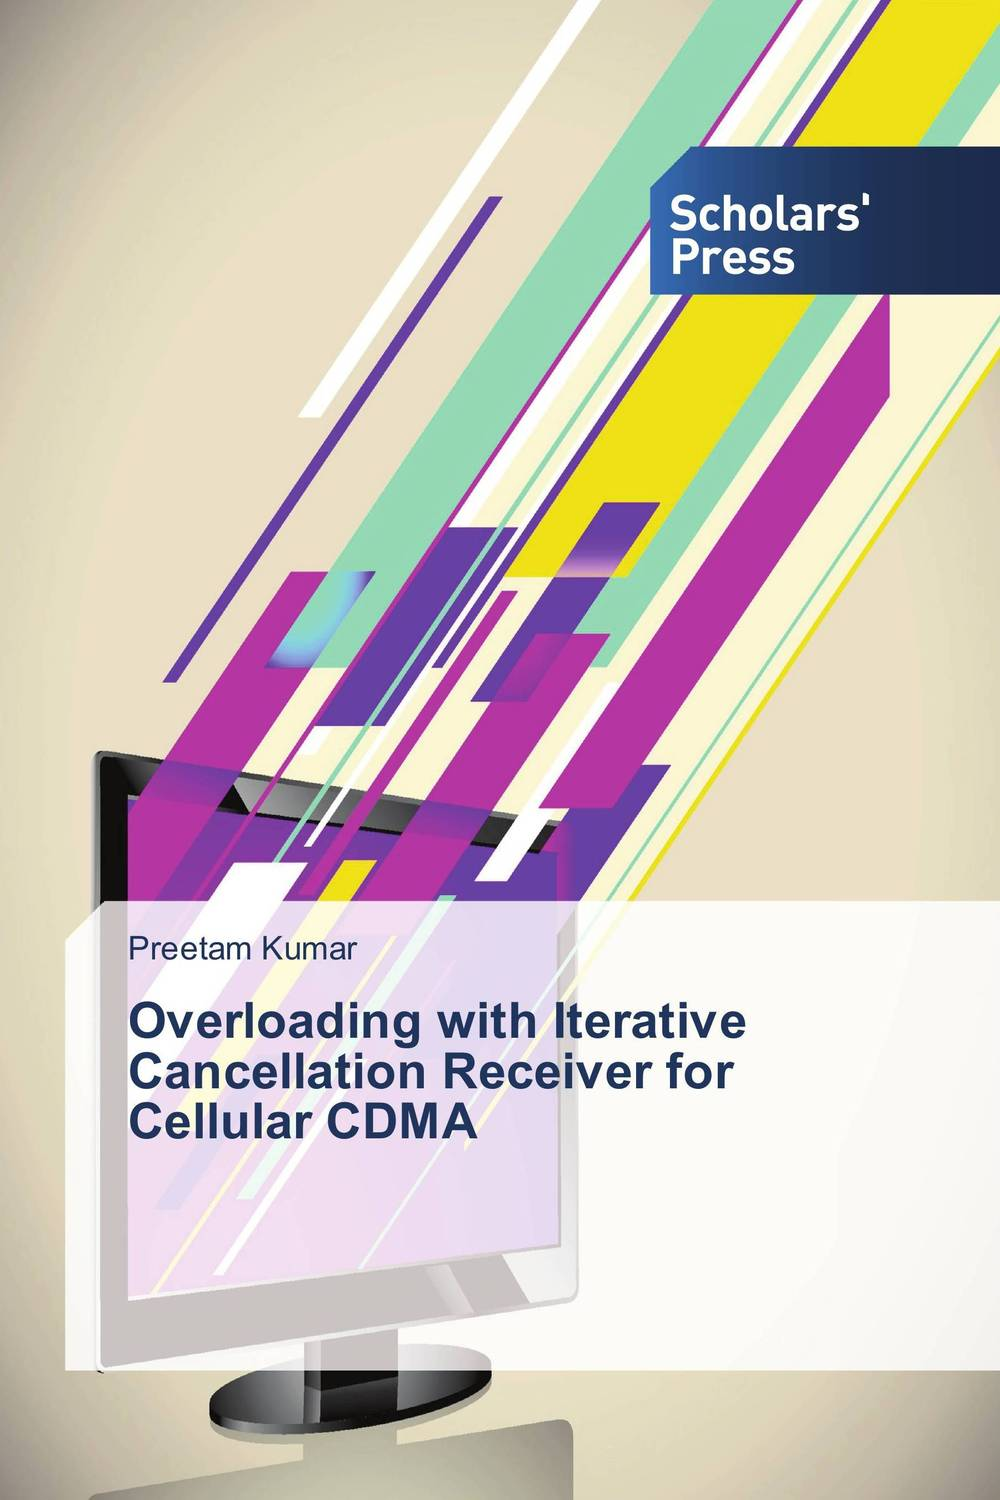 Overloading with Iterative Cancellation Receiver for Cellular CDMA